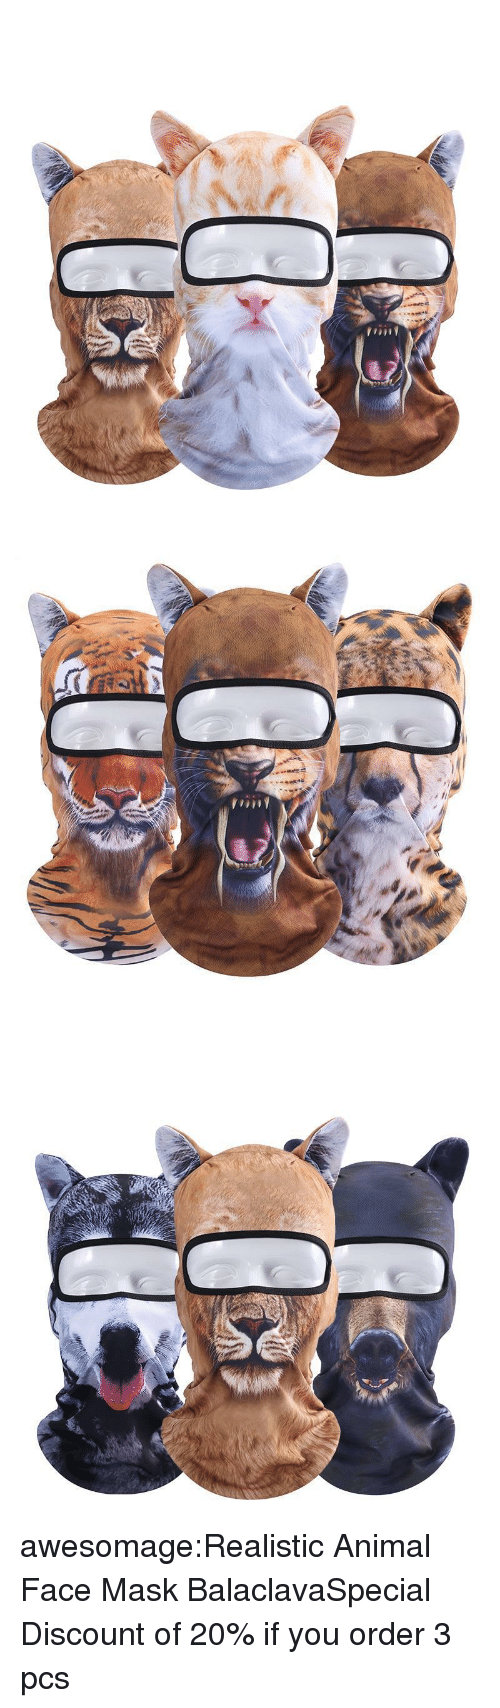 face mask: awesomage:Realistic Animal Face Mask BalaclavaSpecial Discount of 20% if you order 3 pcs